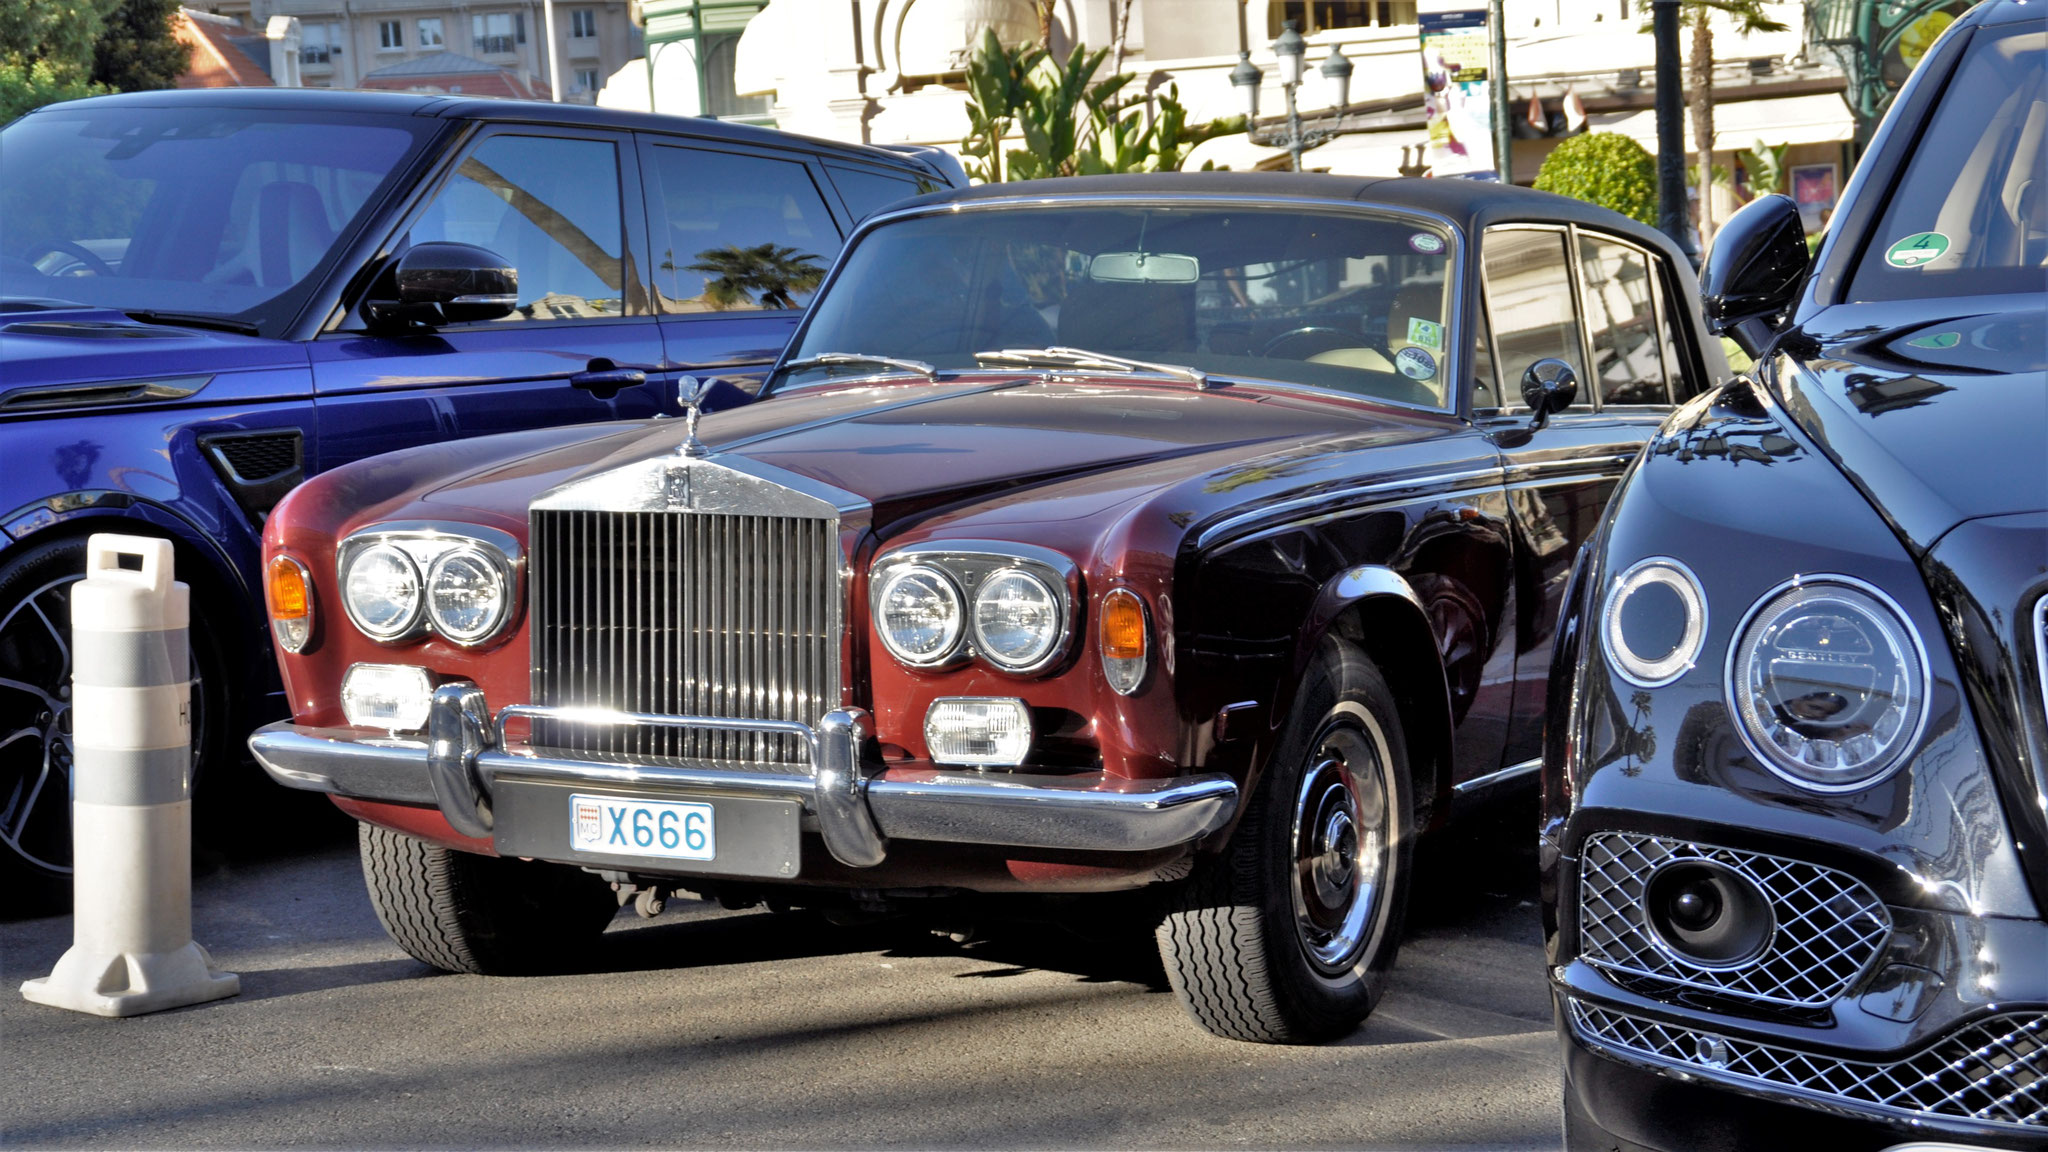 Rolls Royce Silver Shadow - X666 (MC)